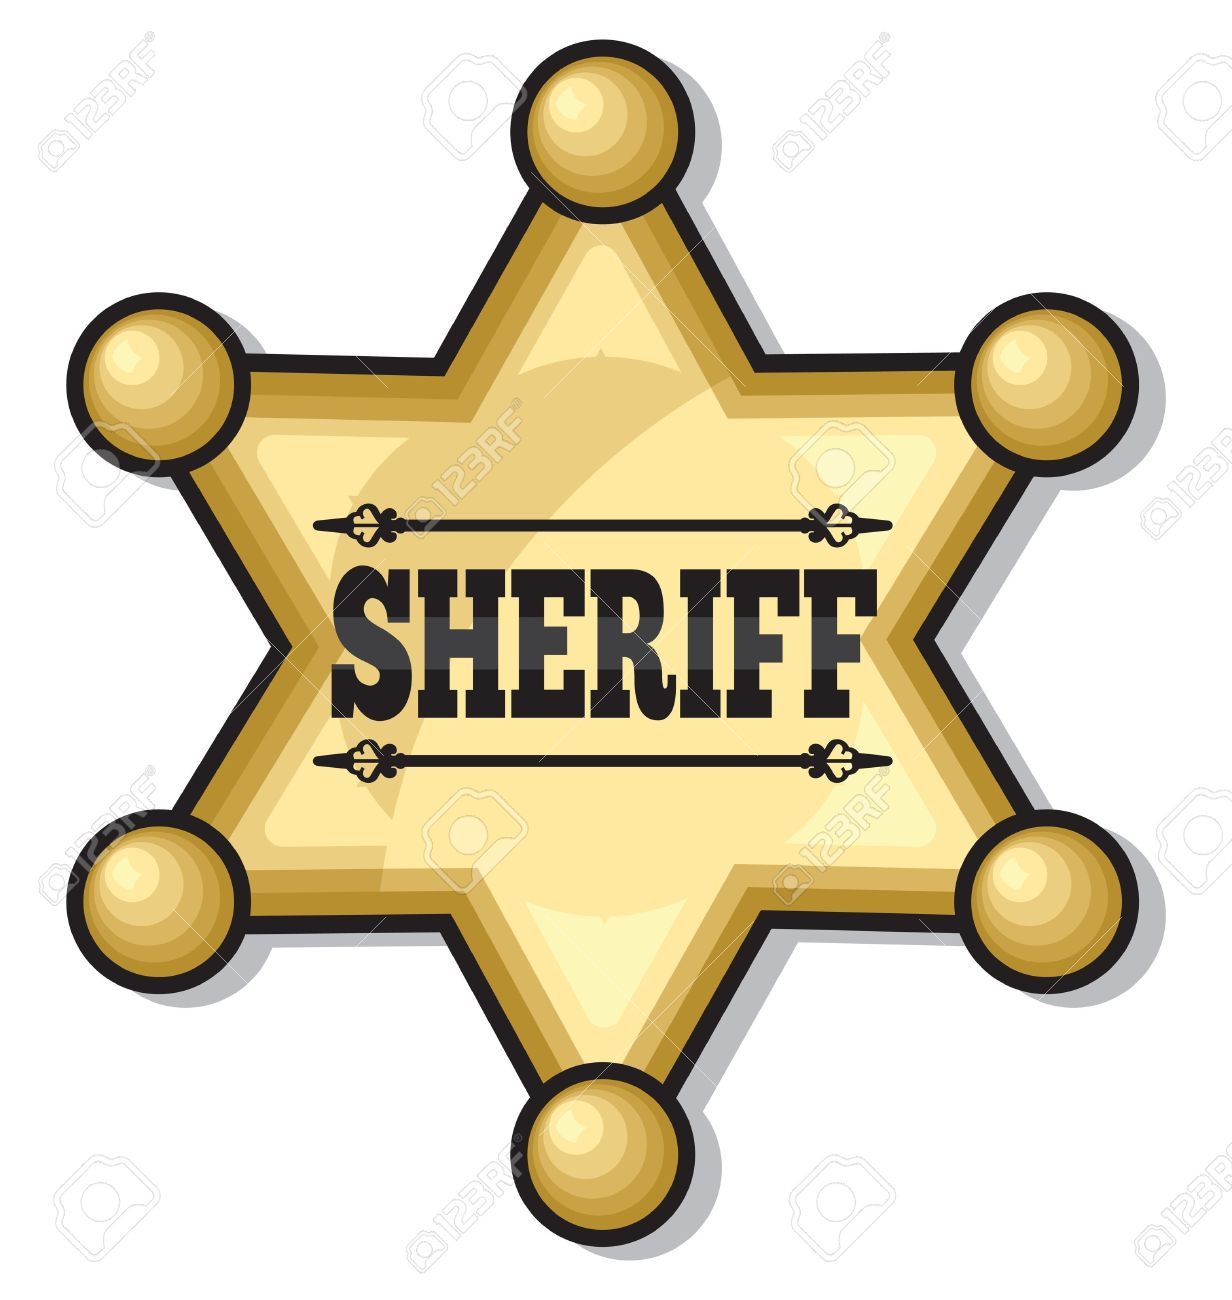 Sheriff star clipart free vector download Sheriff Badge Clipart | Free download best Sheriff Badge ... vector download